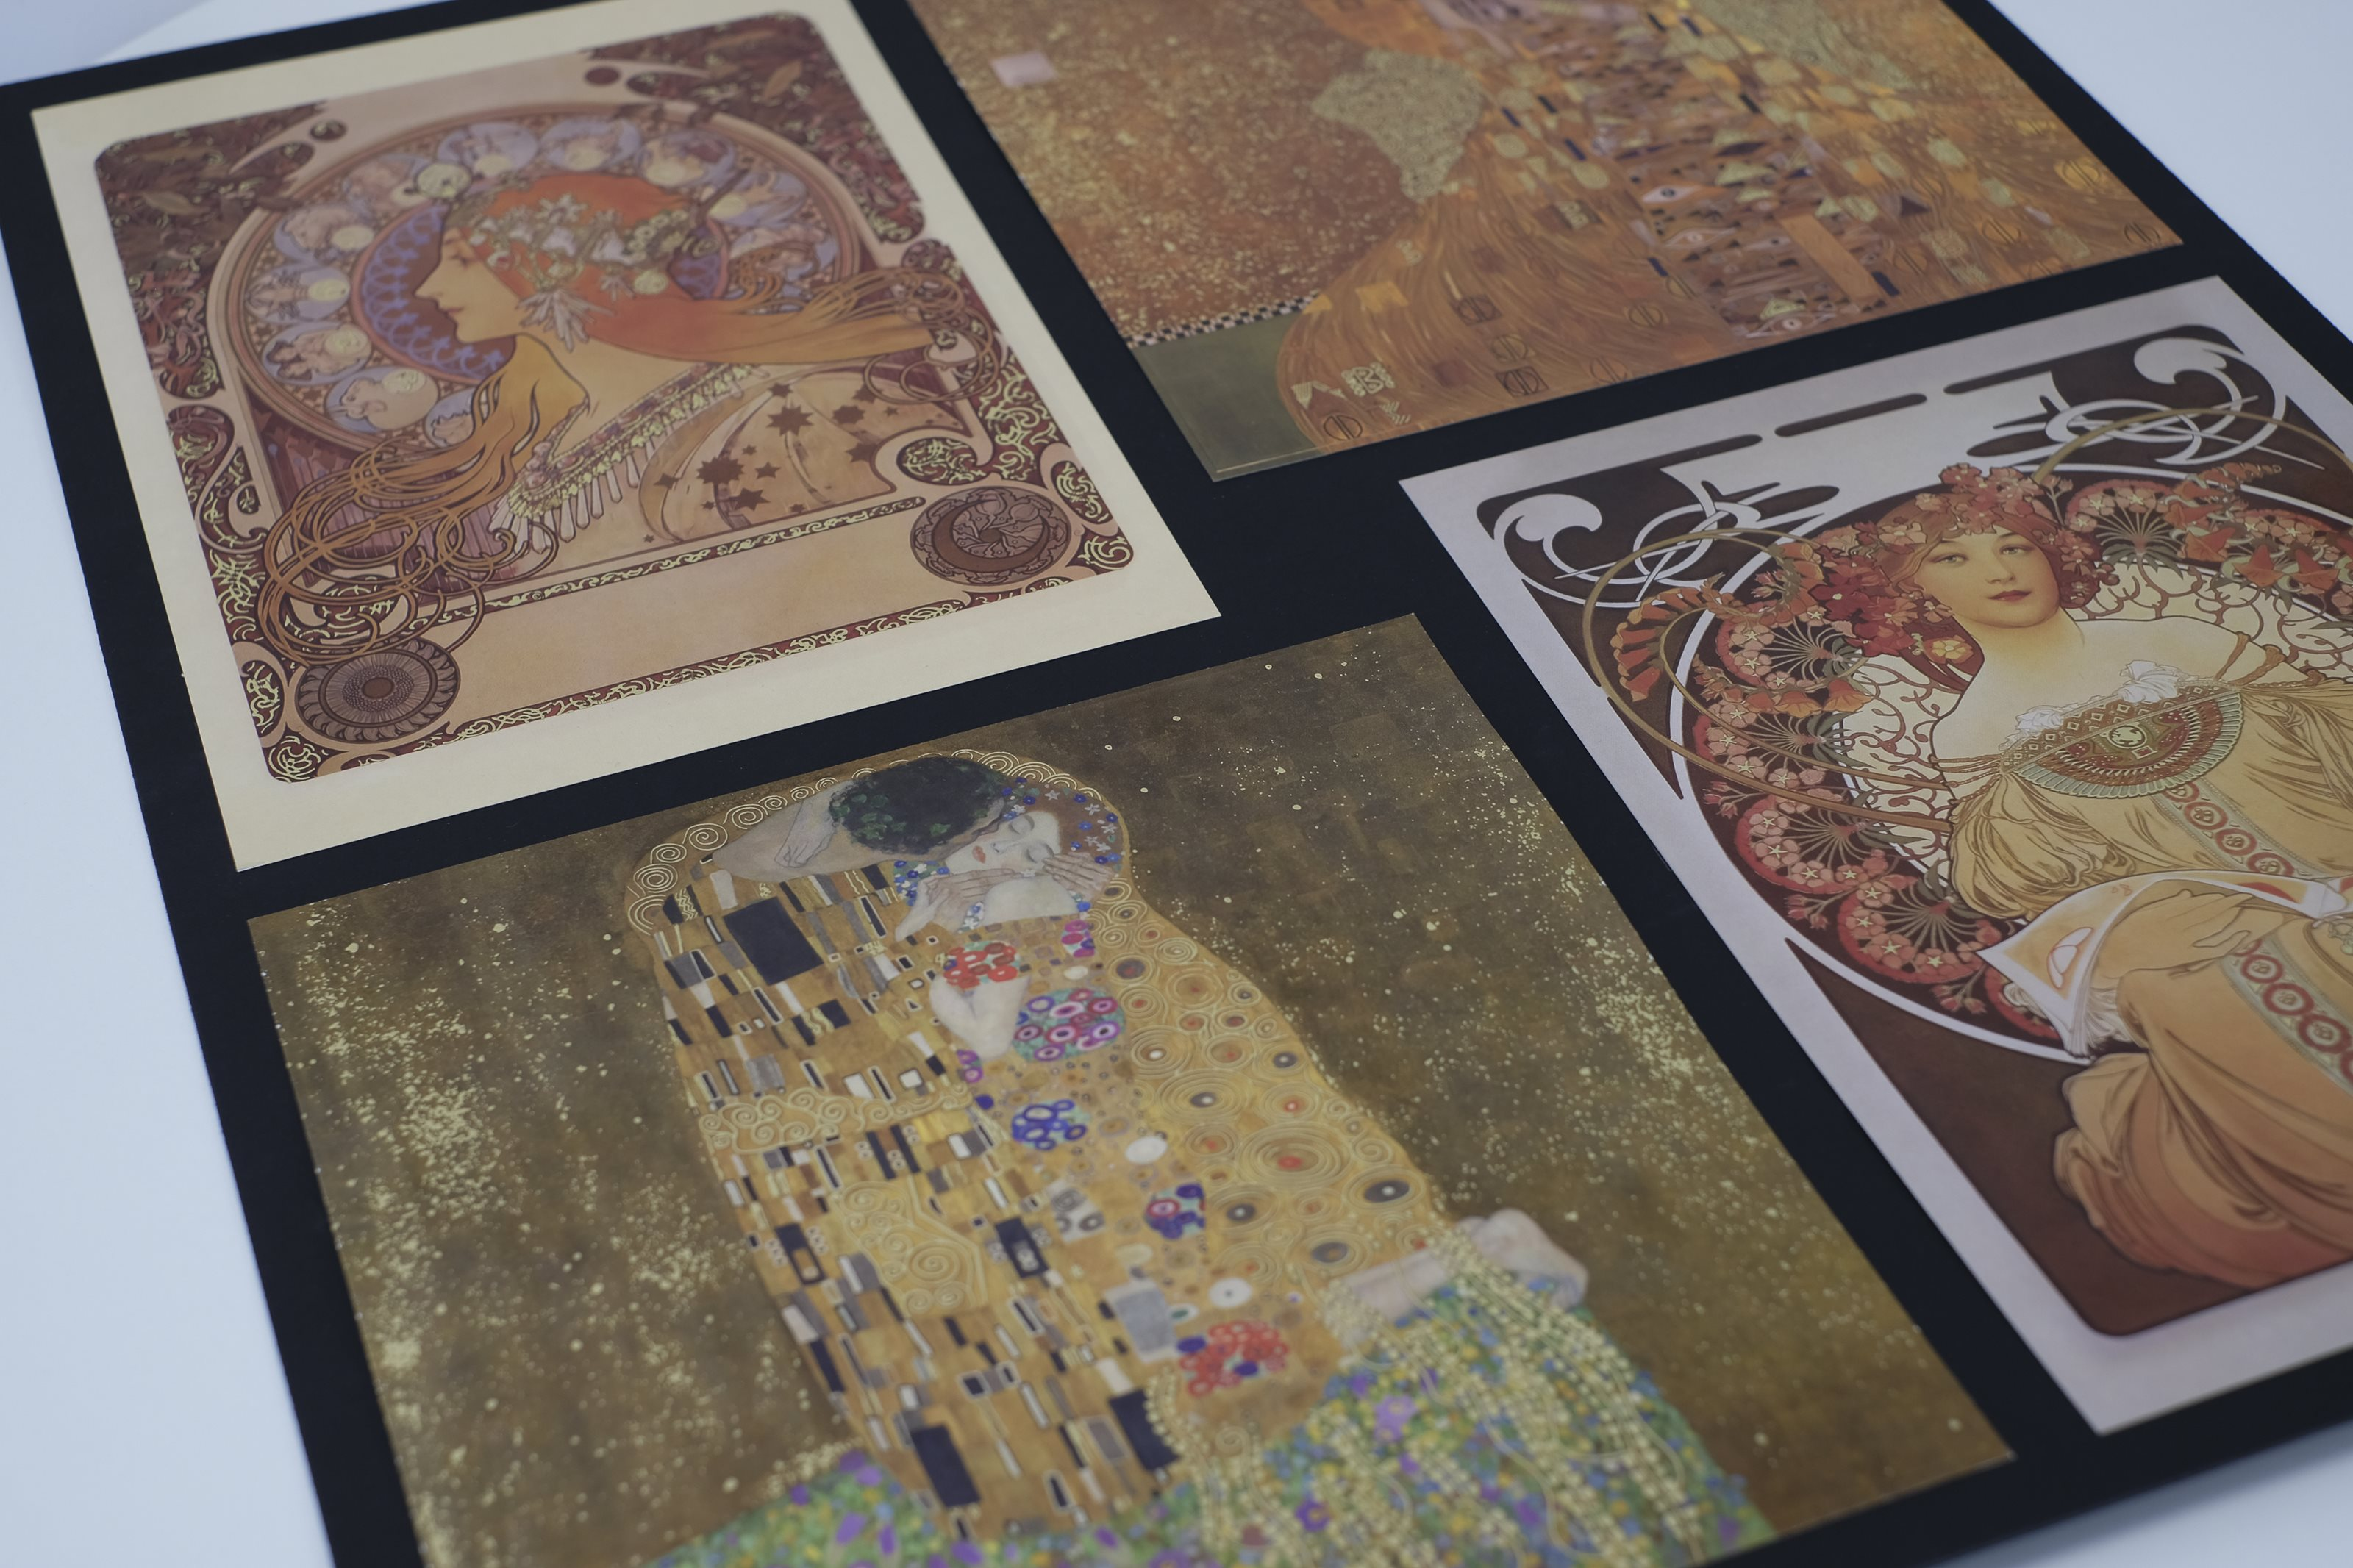 ALFONS MUCHA AND GUSTAV KLIMT